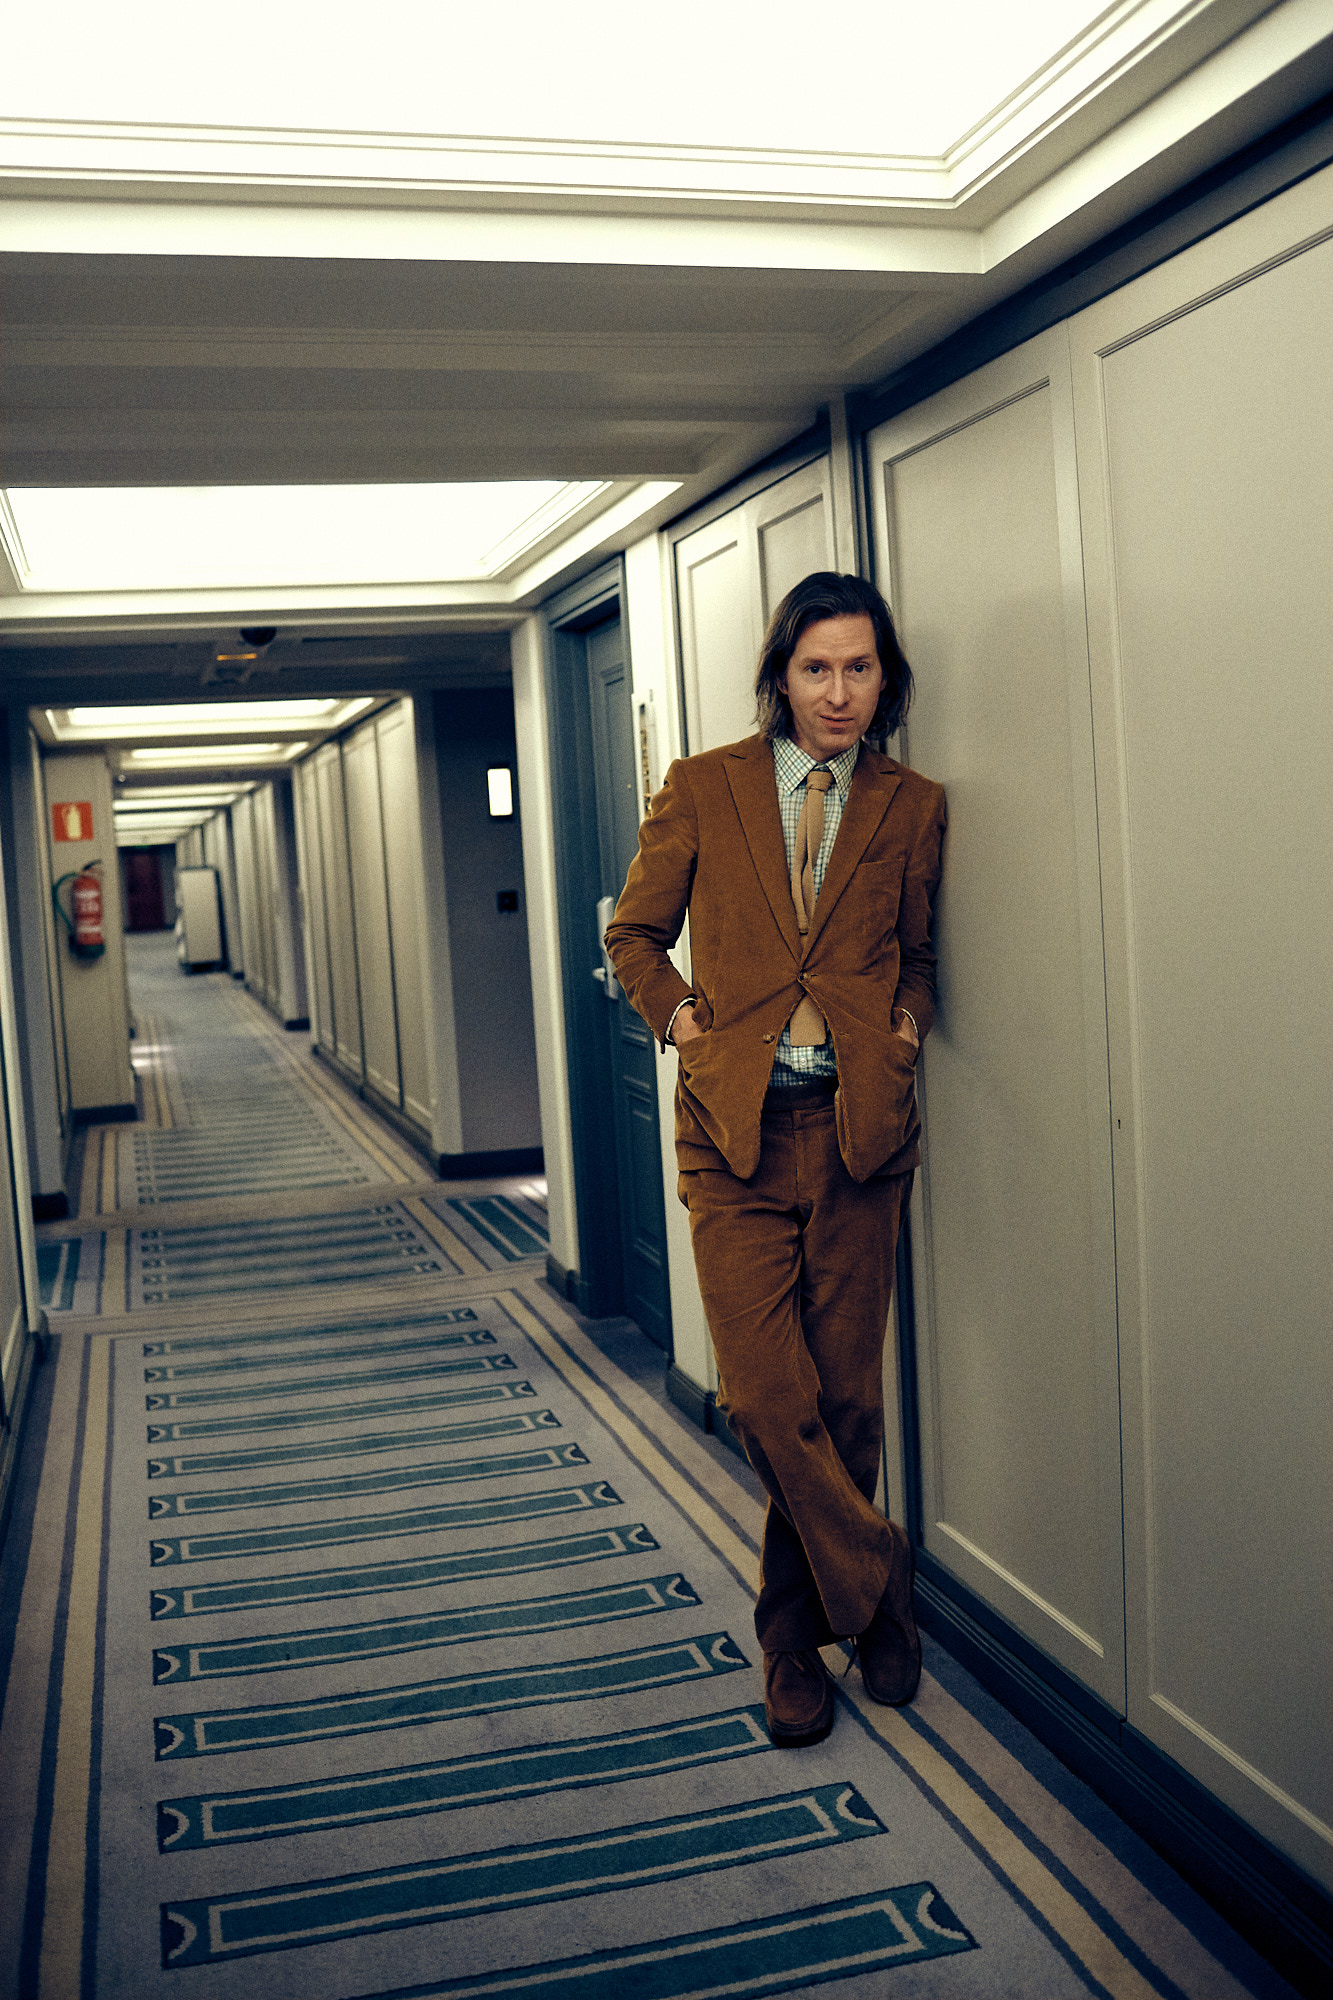 GT_WES_ANDERSON_270218__T1_0837